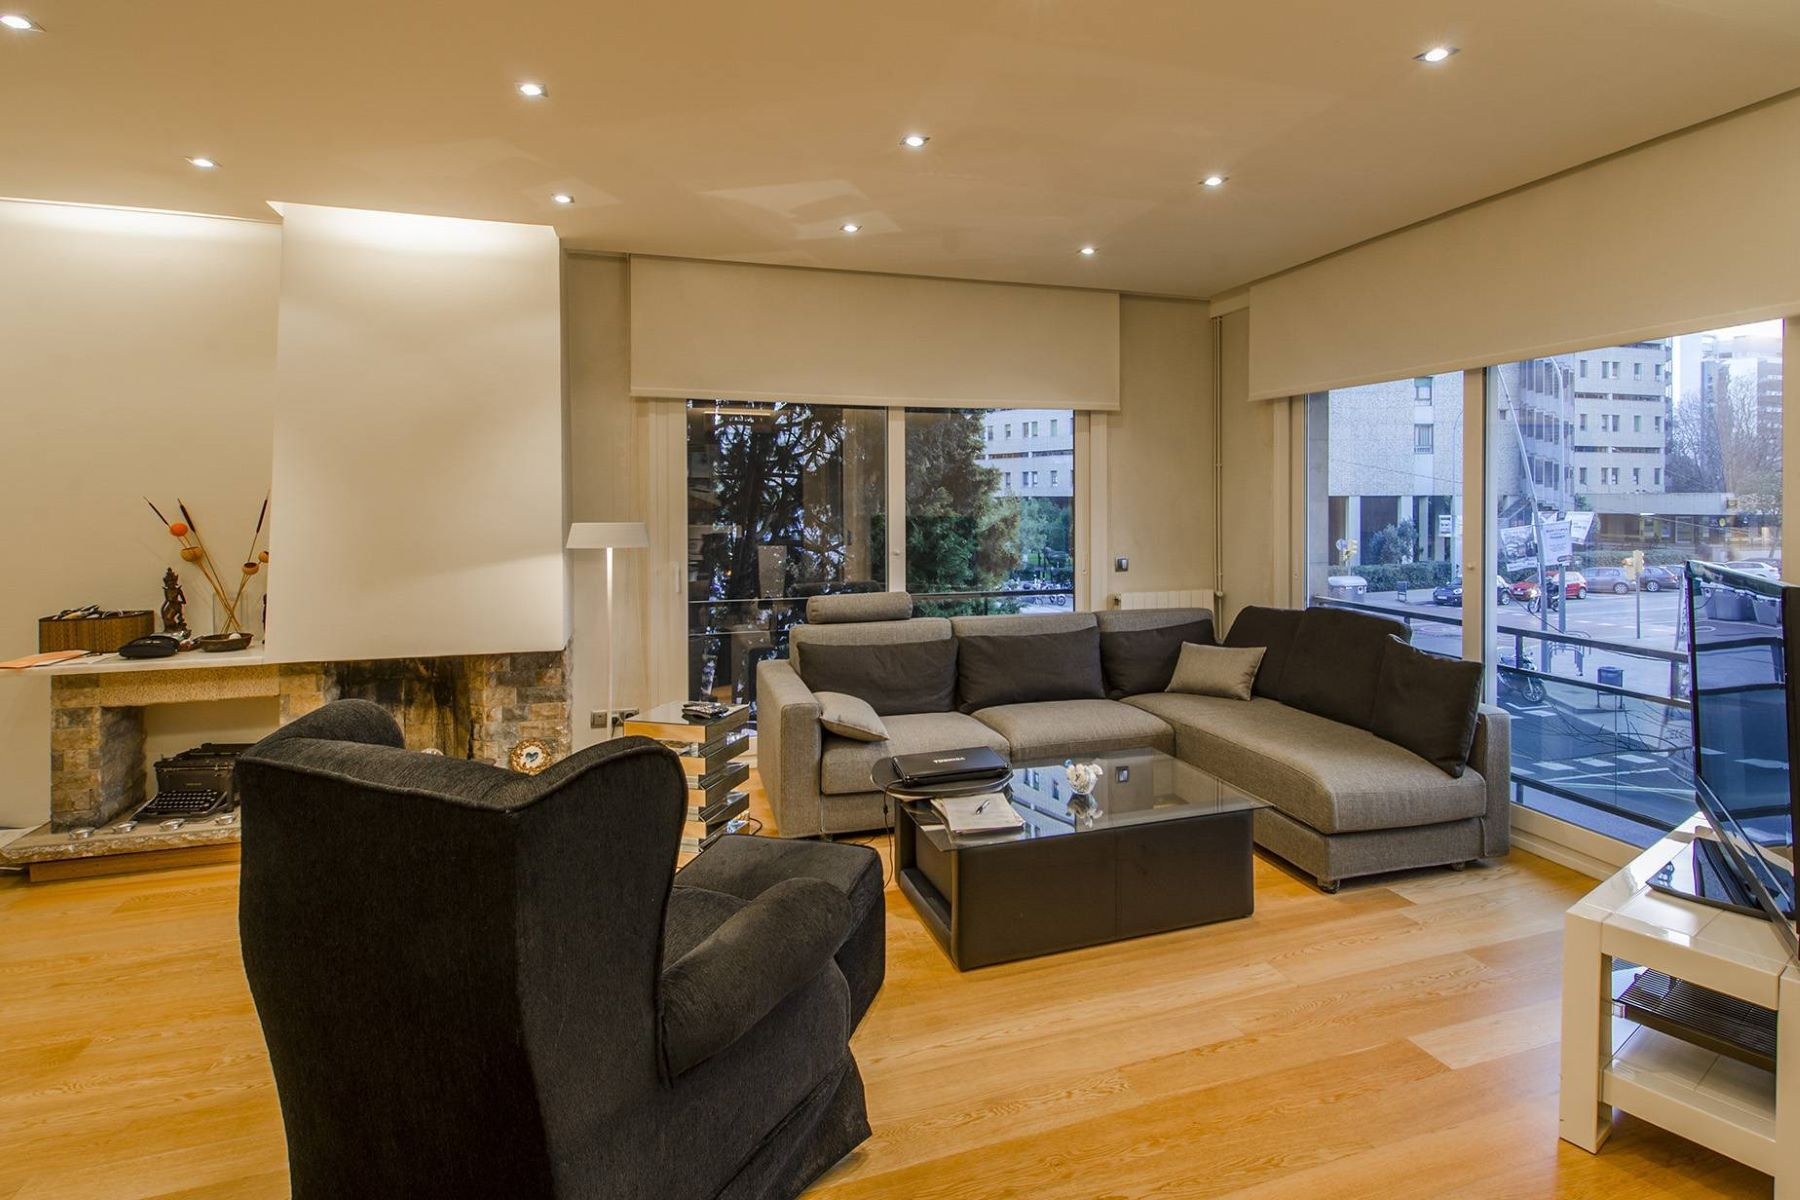 Appartamento per Vendita alle ore Renovated apartment in the area of Turo Park Barcelona City, Barcellona, 08034 Spagna